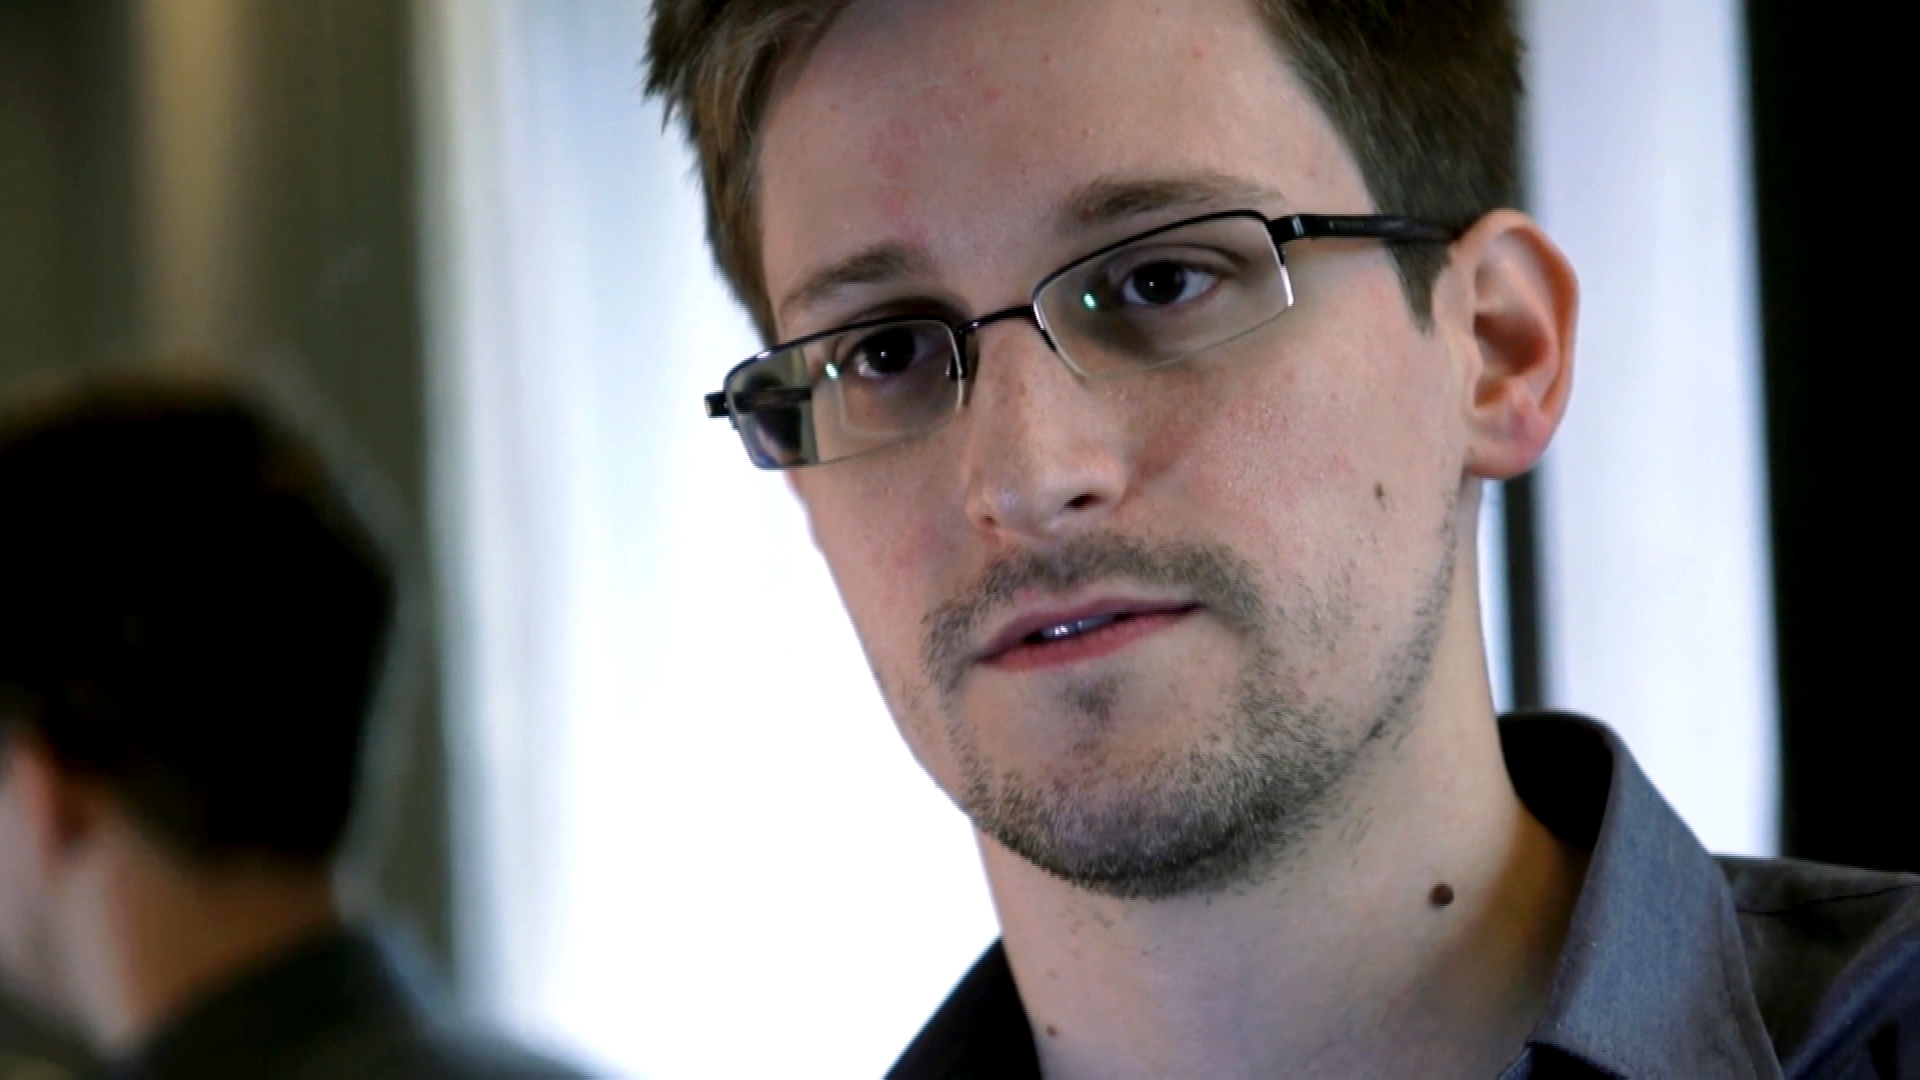 Snowden claims that he was trained as a spy